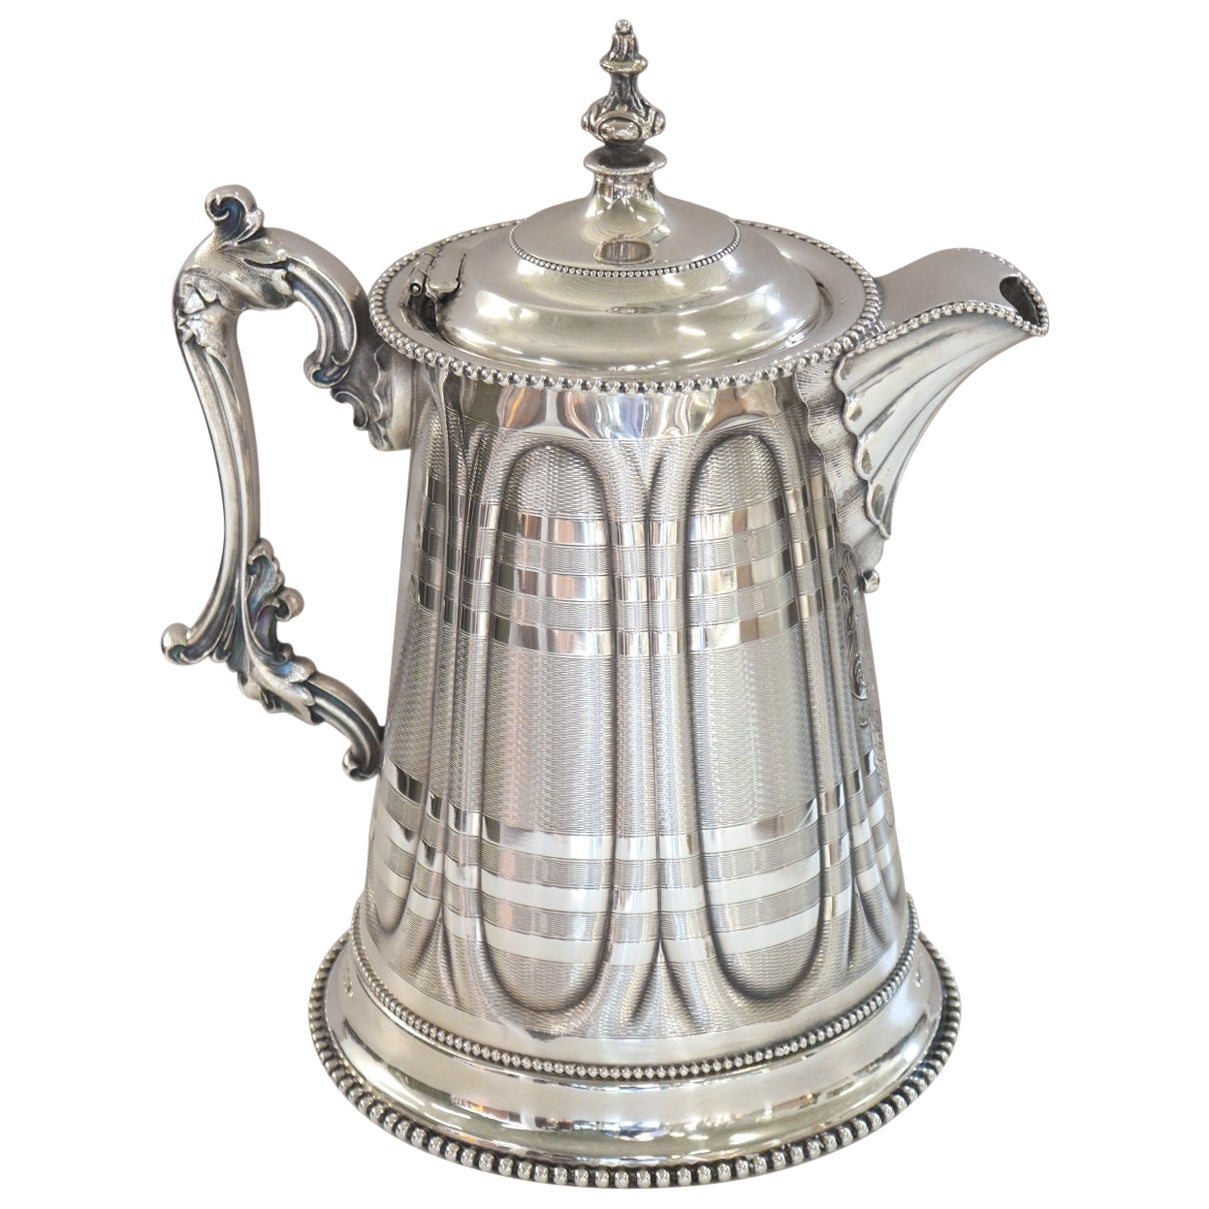 19th Century American Antique Silver Plate Pitcher by Rogers Smith & Co